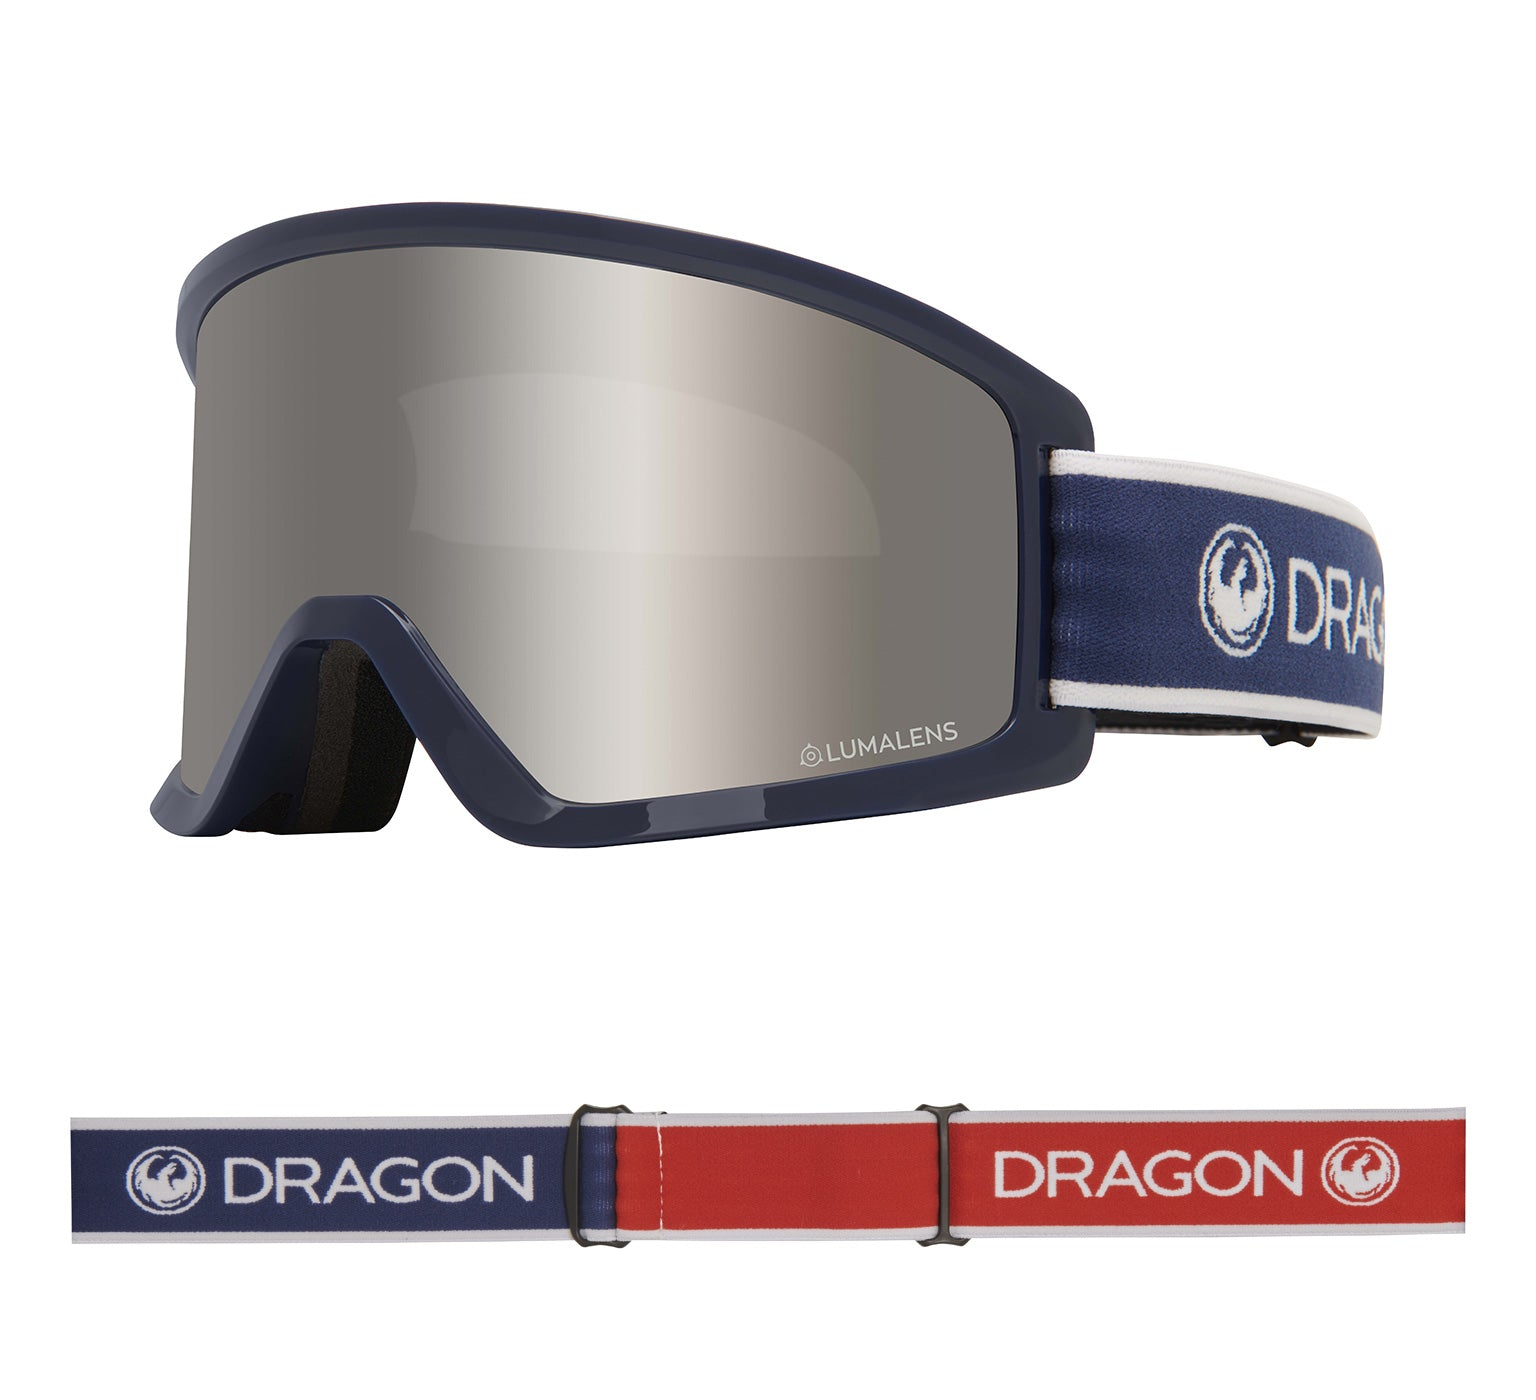 DX3 OTG - Designer ; with Lumalens Silver Ionized Lens